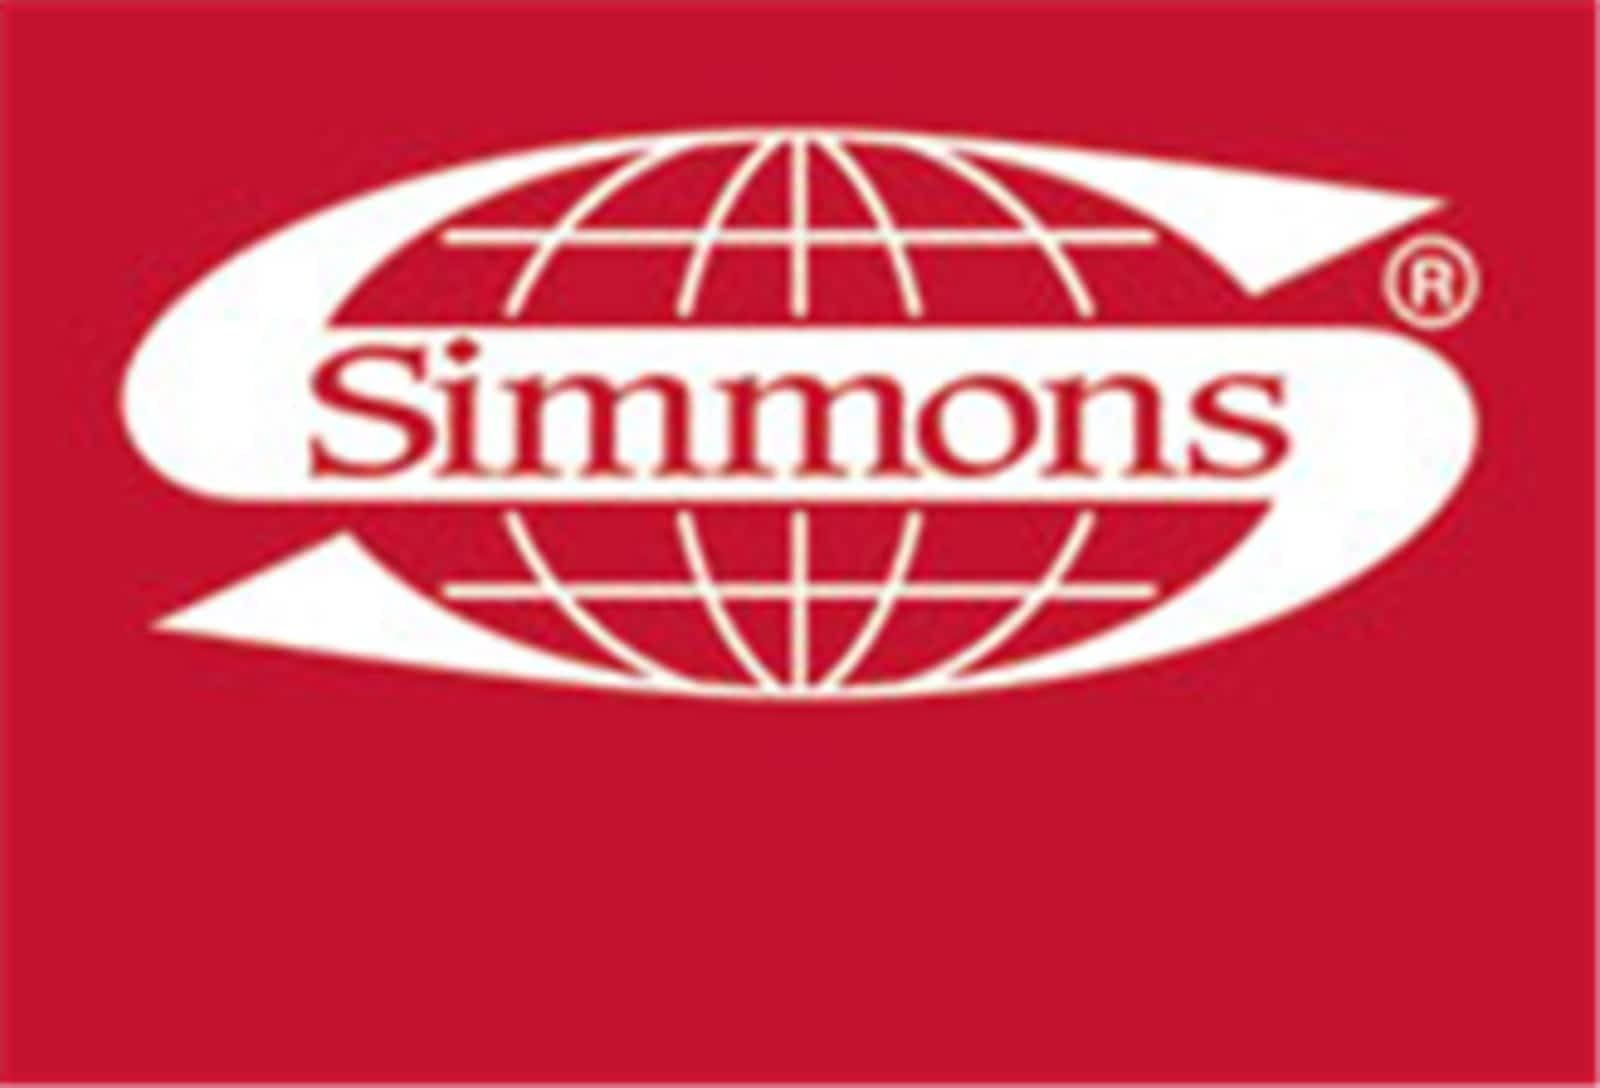 simmons mattress logo. Simmons Mattress Gallery - Opening Hours 190-1395 Ellice Ave, Winnipeg, MB Logo L